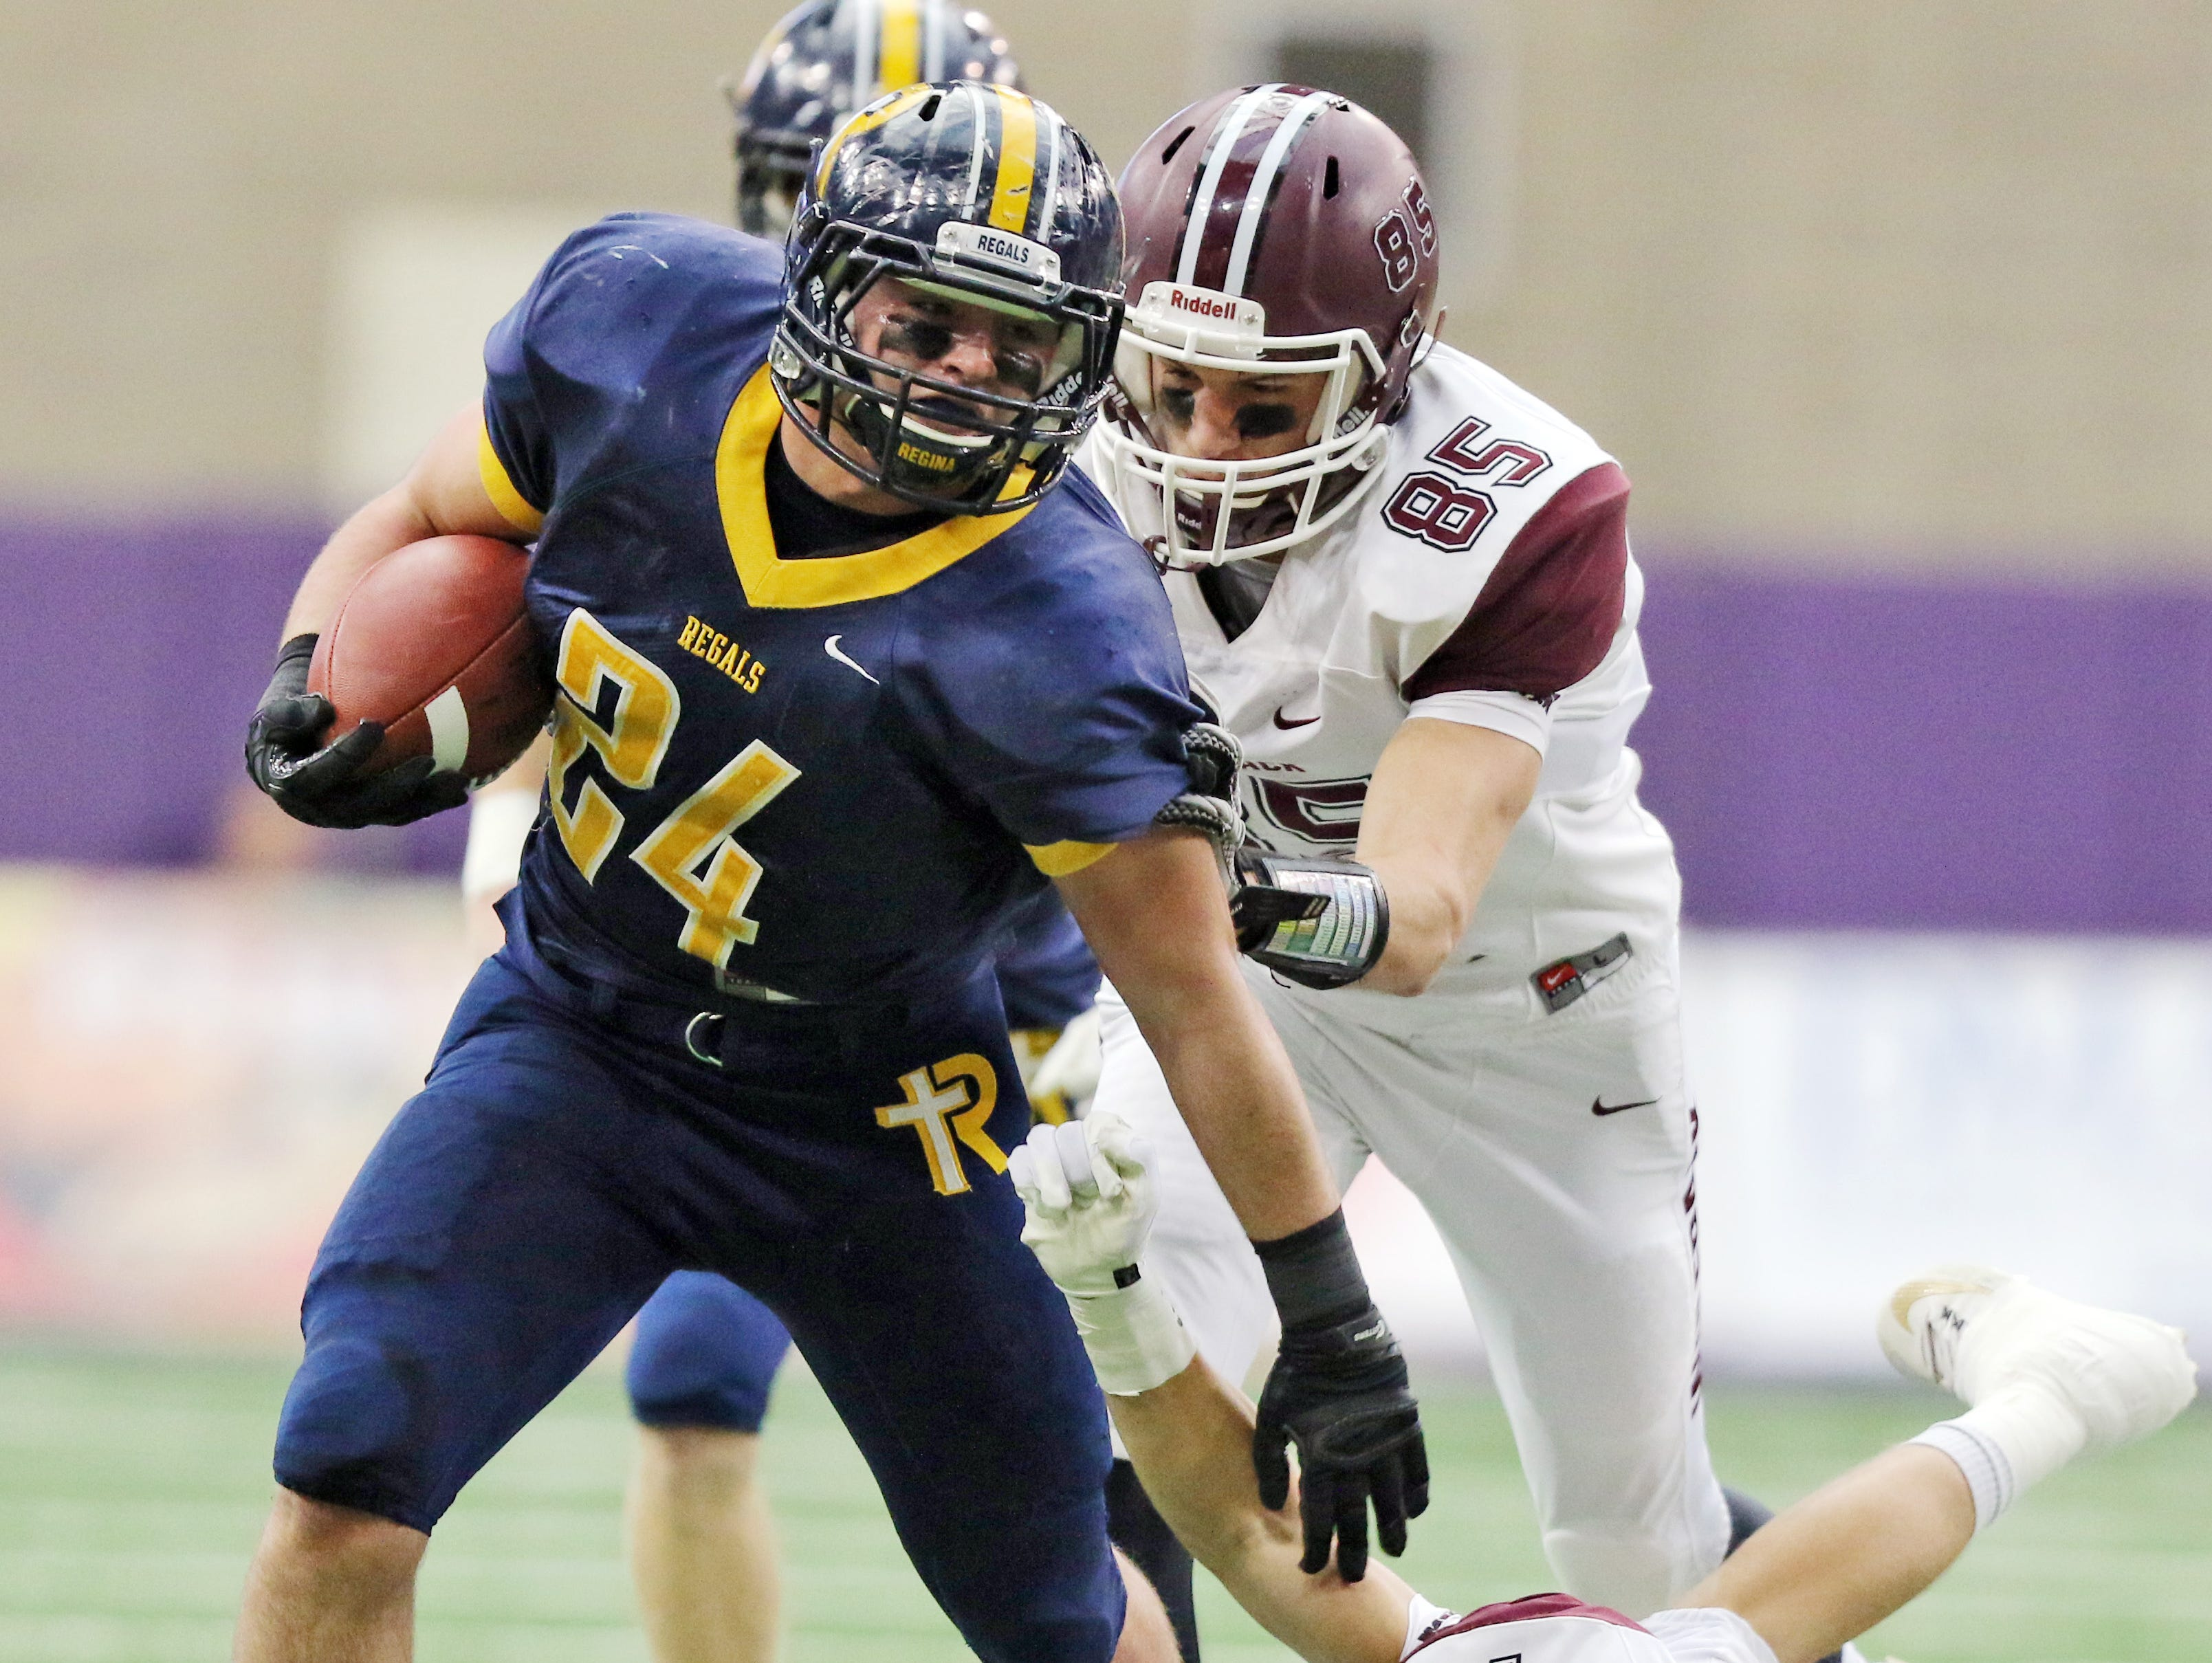 Justin Hunter of Iowa City Regina runs the ball in the Class 1A Championship game with Western Christian Hull Monday, Nov. 23, 2015. The Regals won their sixth consecutive state championship.